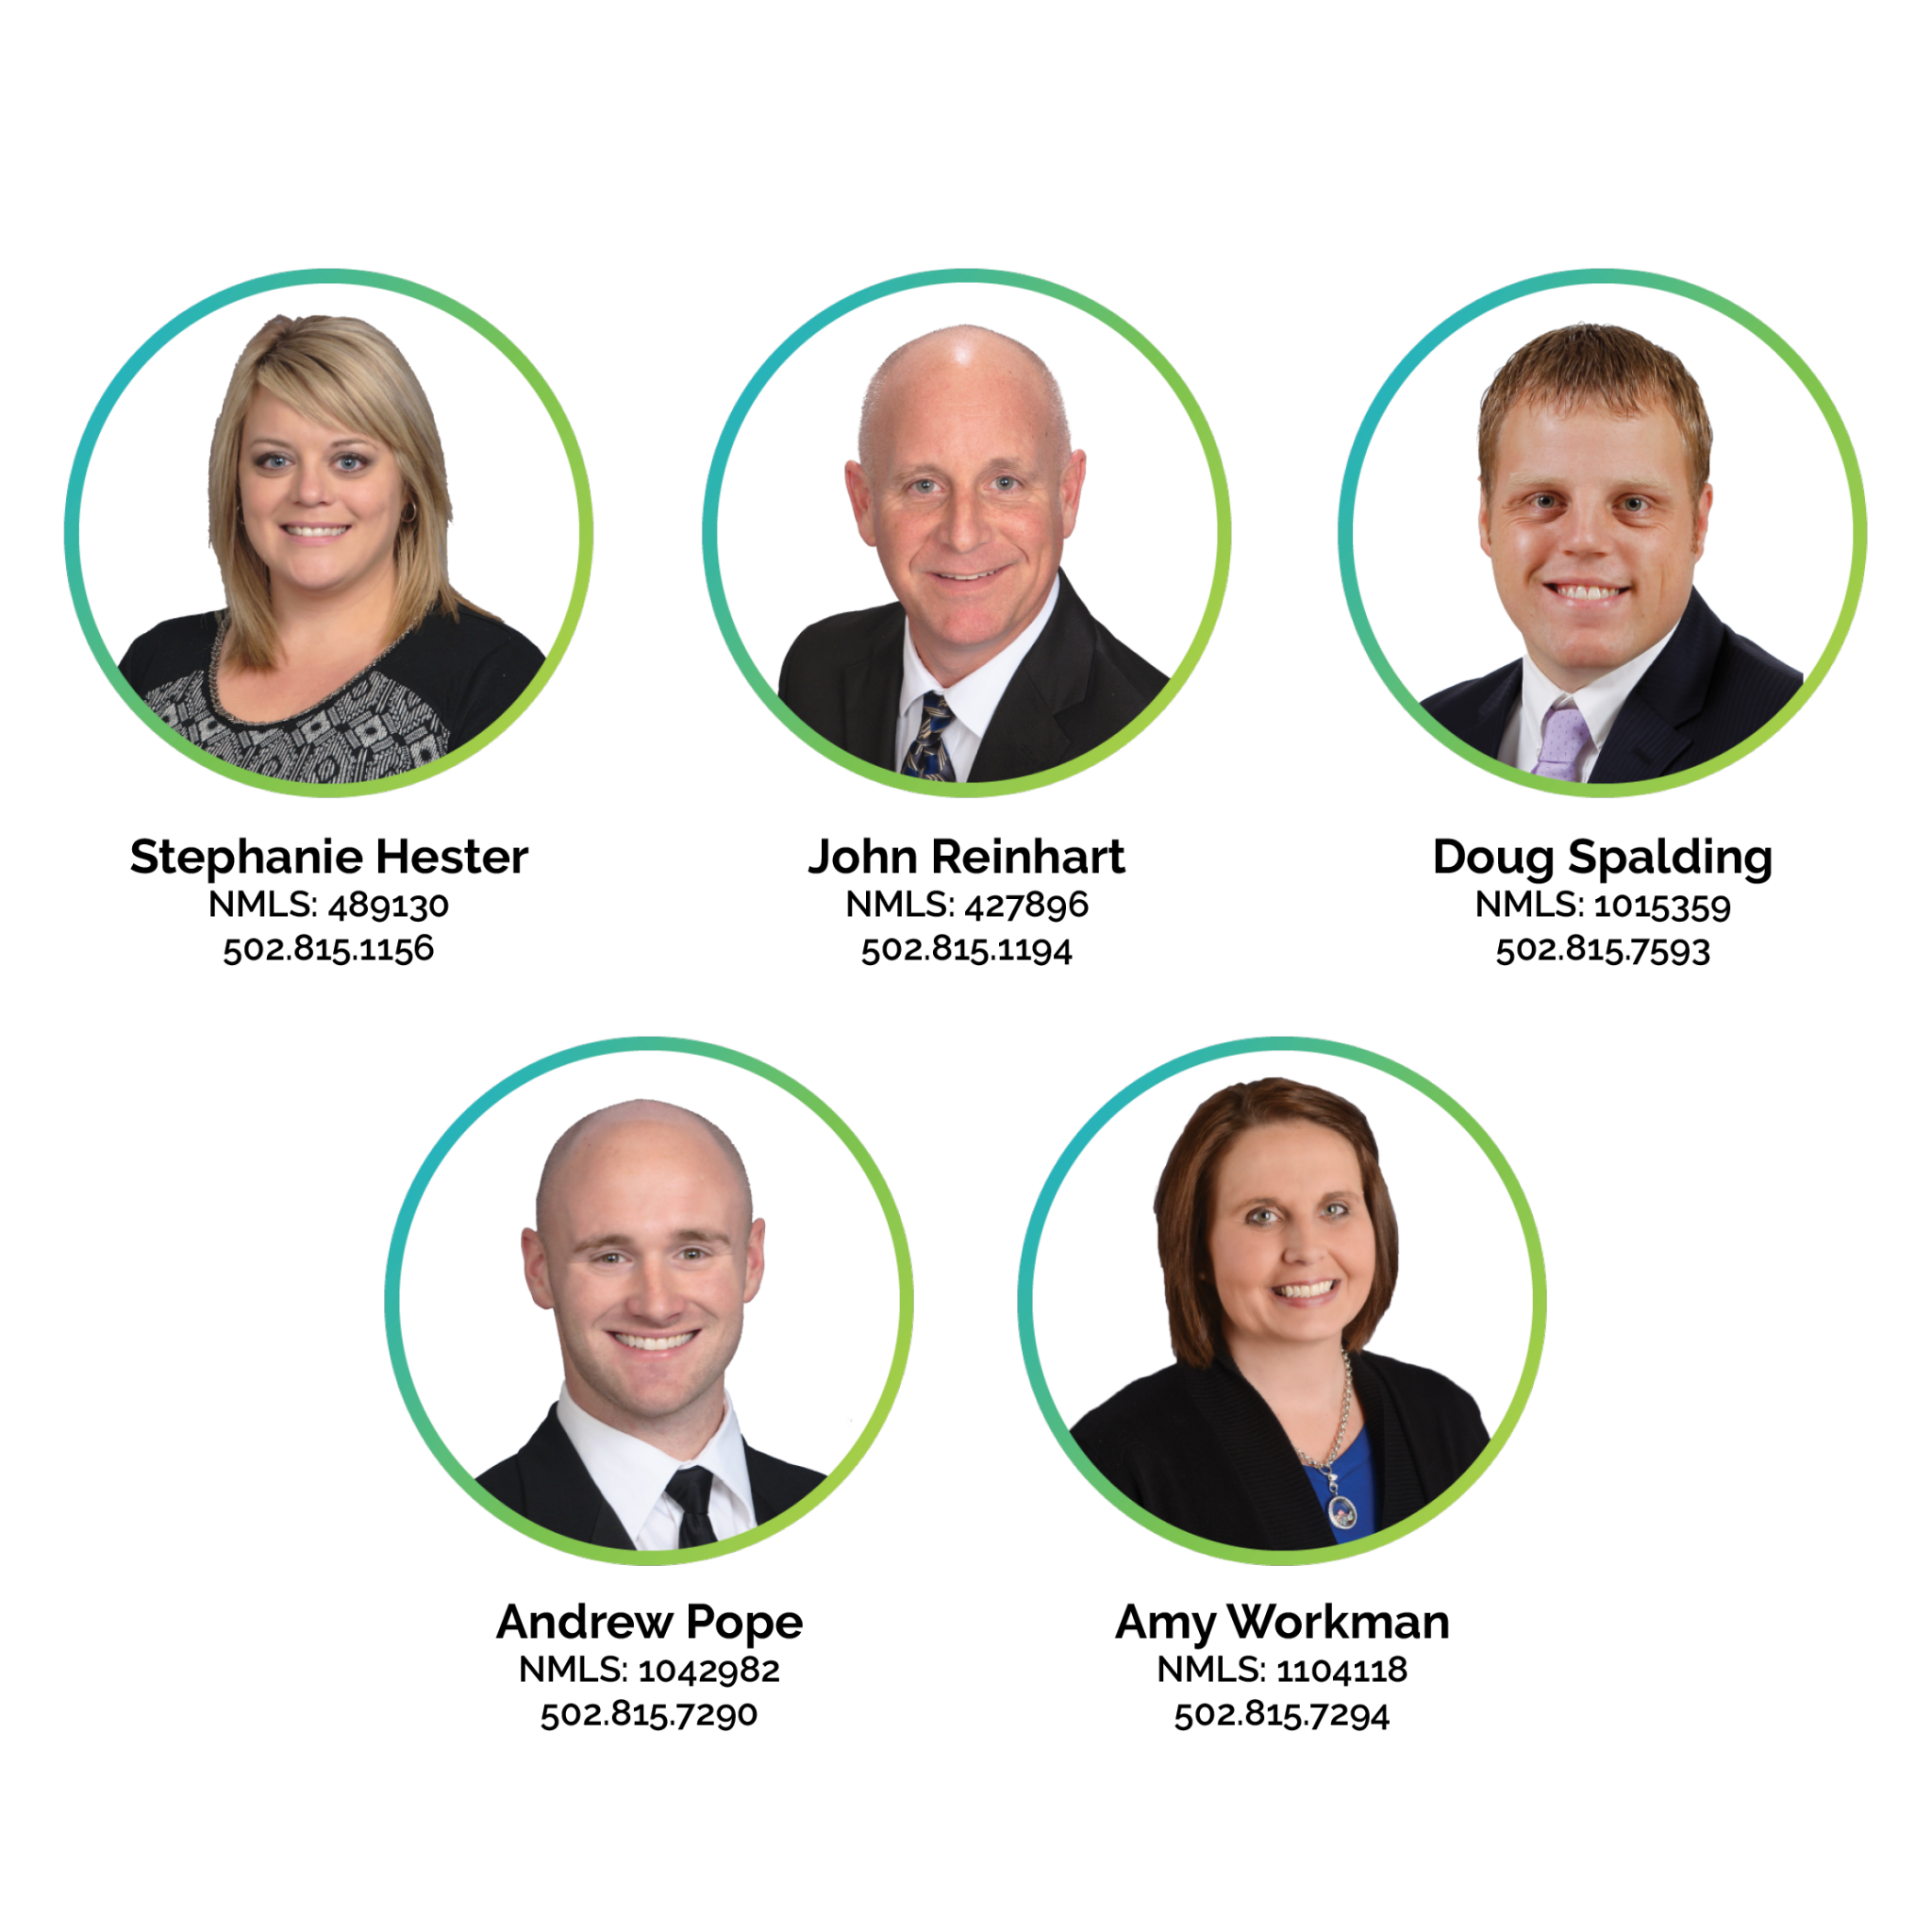 Mortgage loan officers headshots and phone numbers. Starting with Stephanie Hester; 502-815-1156. John Reinhart; 502-815-1194. Doug Spalding; 502-815-7593. Andrew Pope; 502-815-7290. Amy Workman; 502-815-7294.